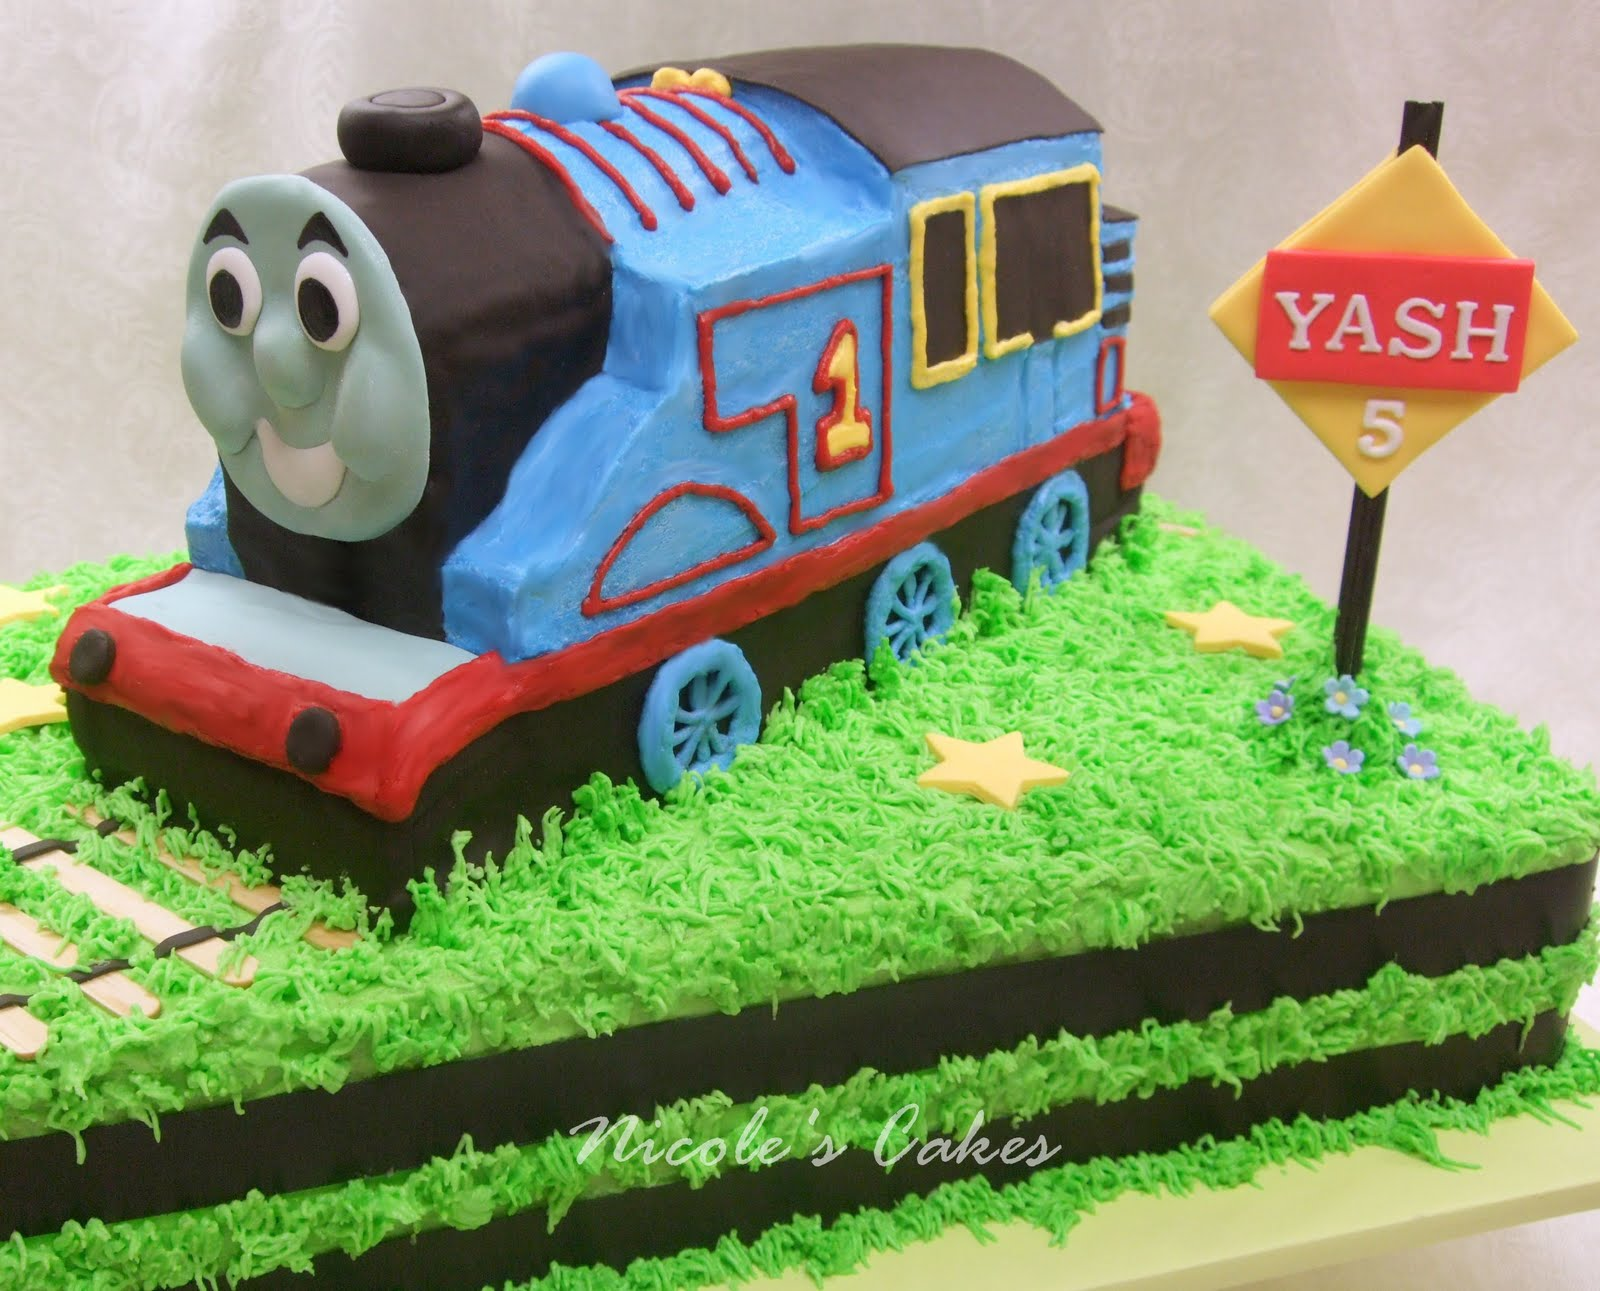 On Birthday Cakes 3D Model Thomas the Tank Engine Cake Eggless